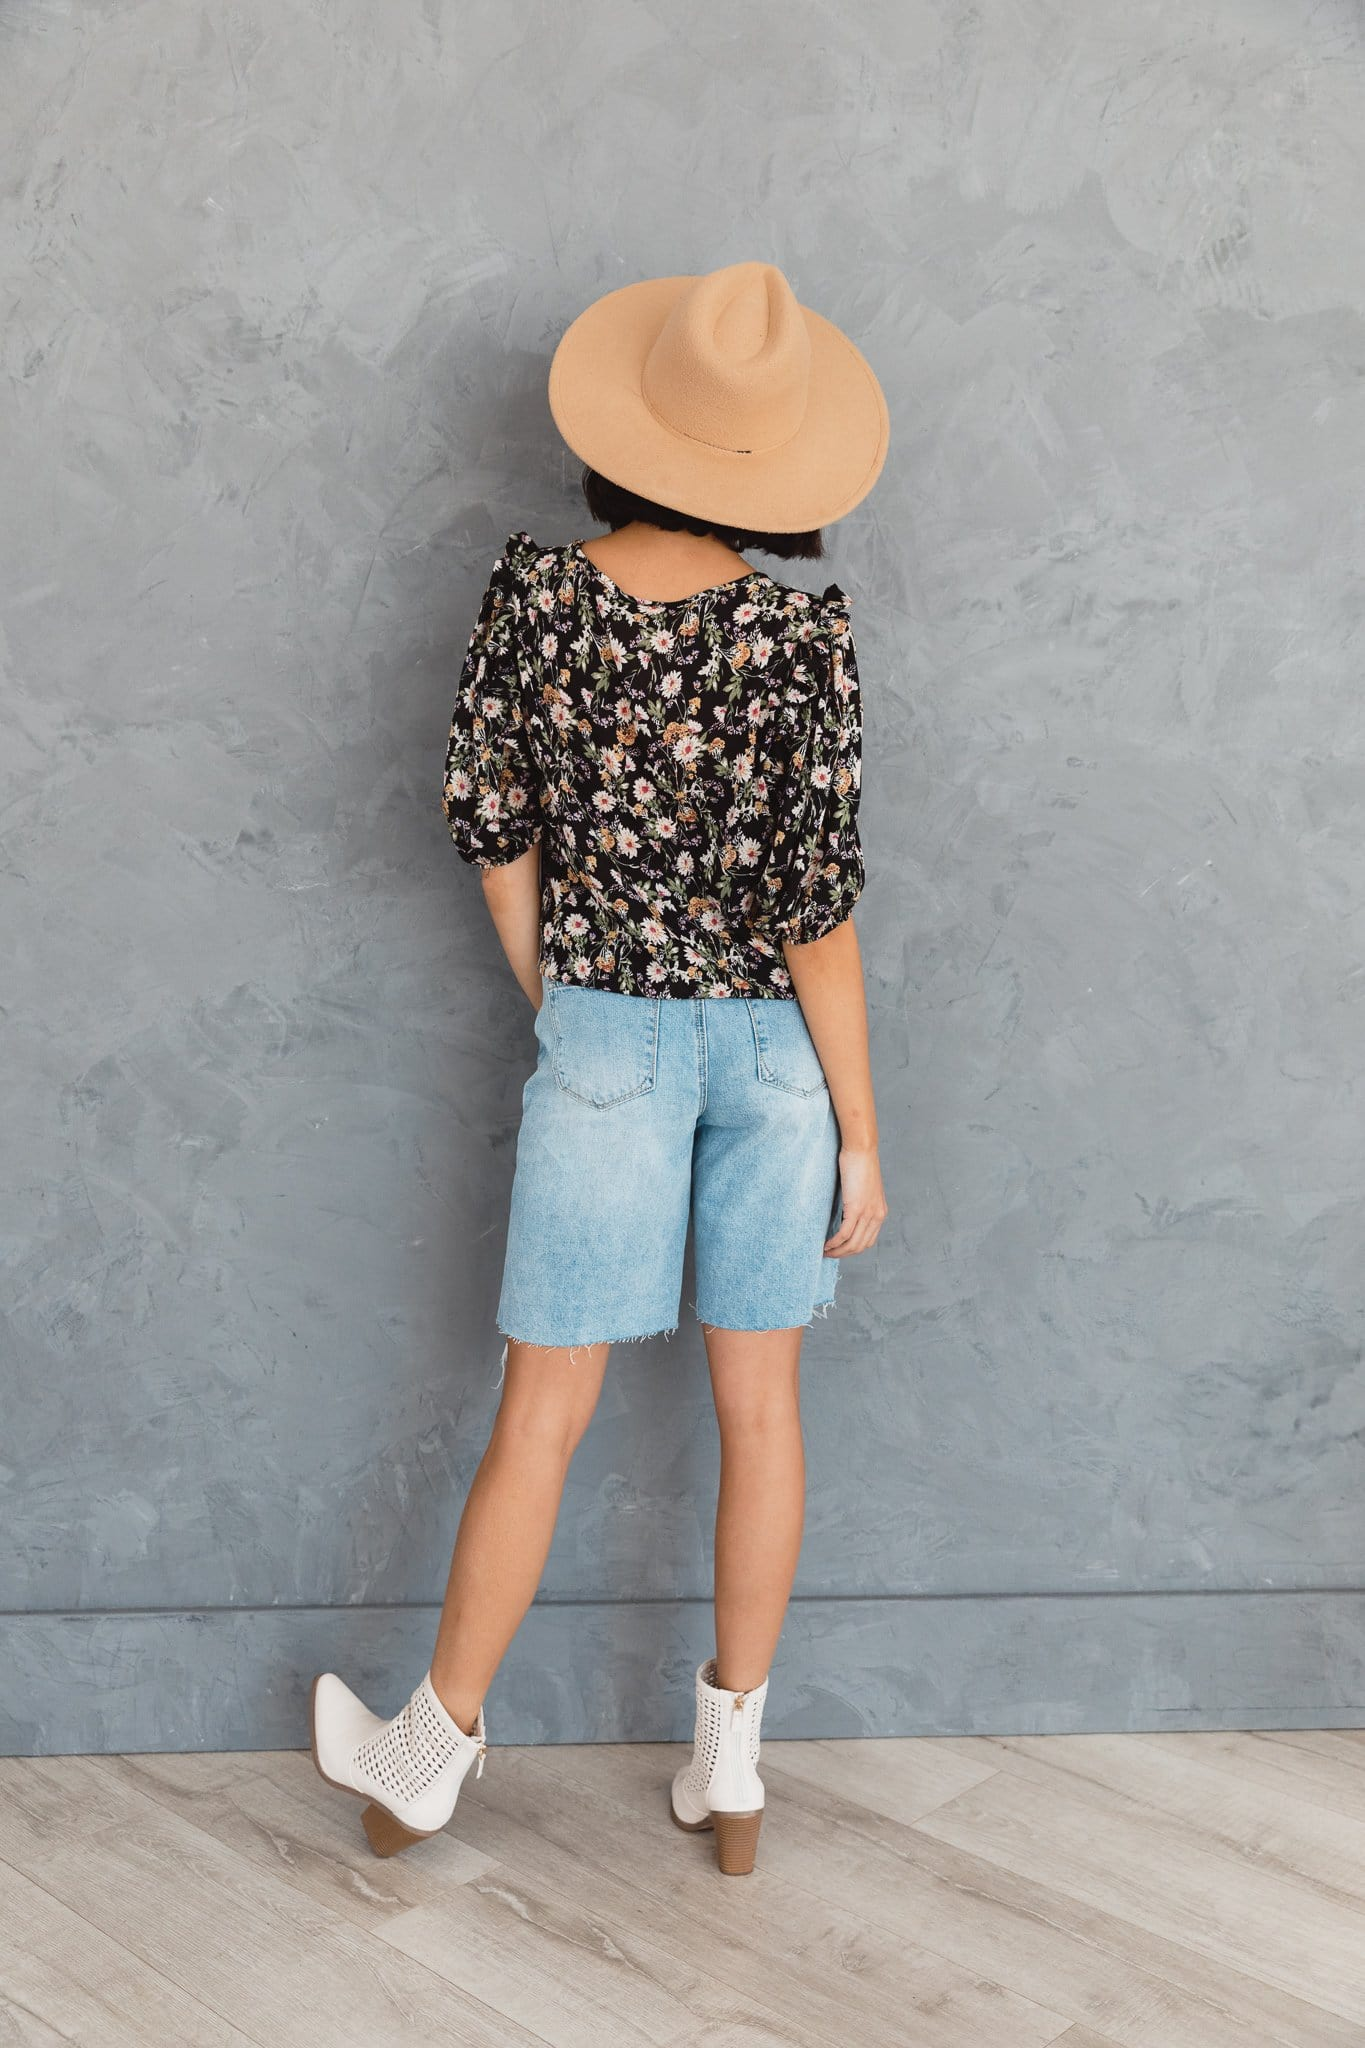 The Fara Ruffled Floral Top in Black